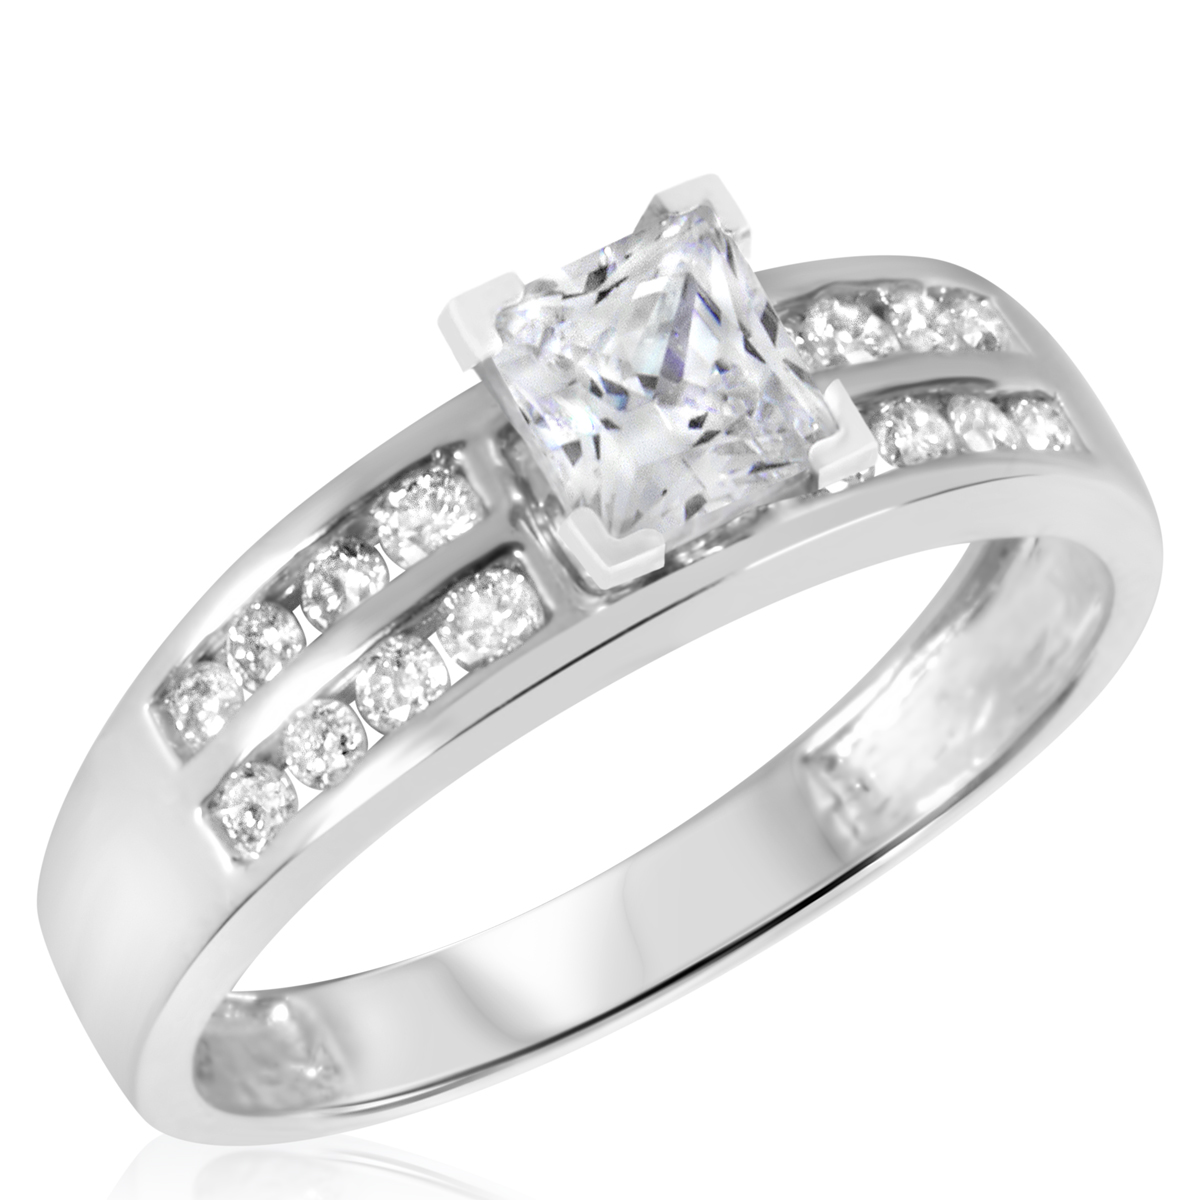 1 1/10 CT. T.W. Diamond Ladies Engagement Ring 14K White Gold- Size 8